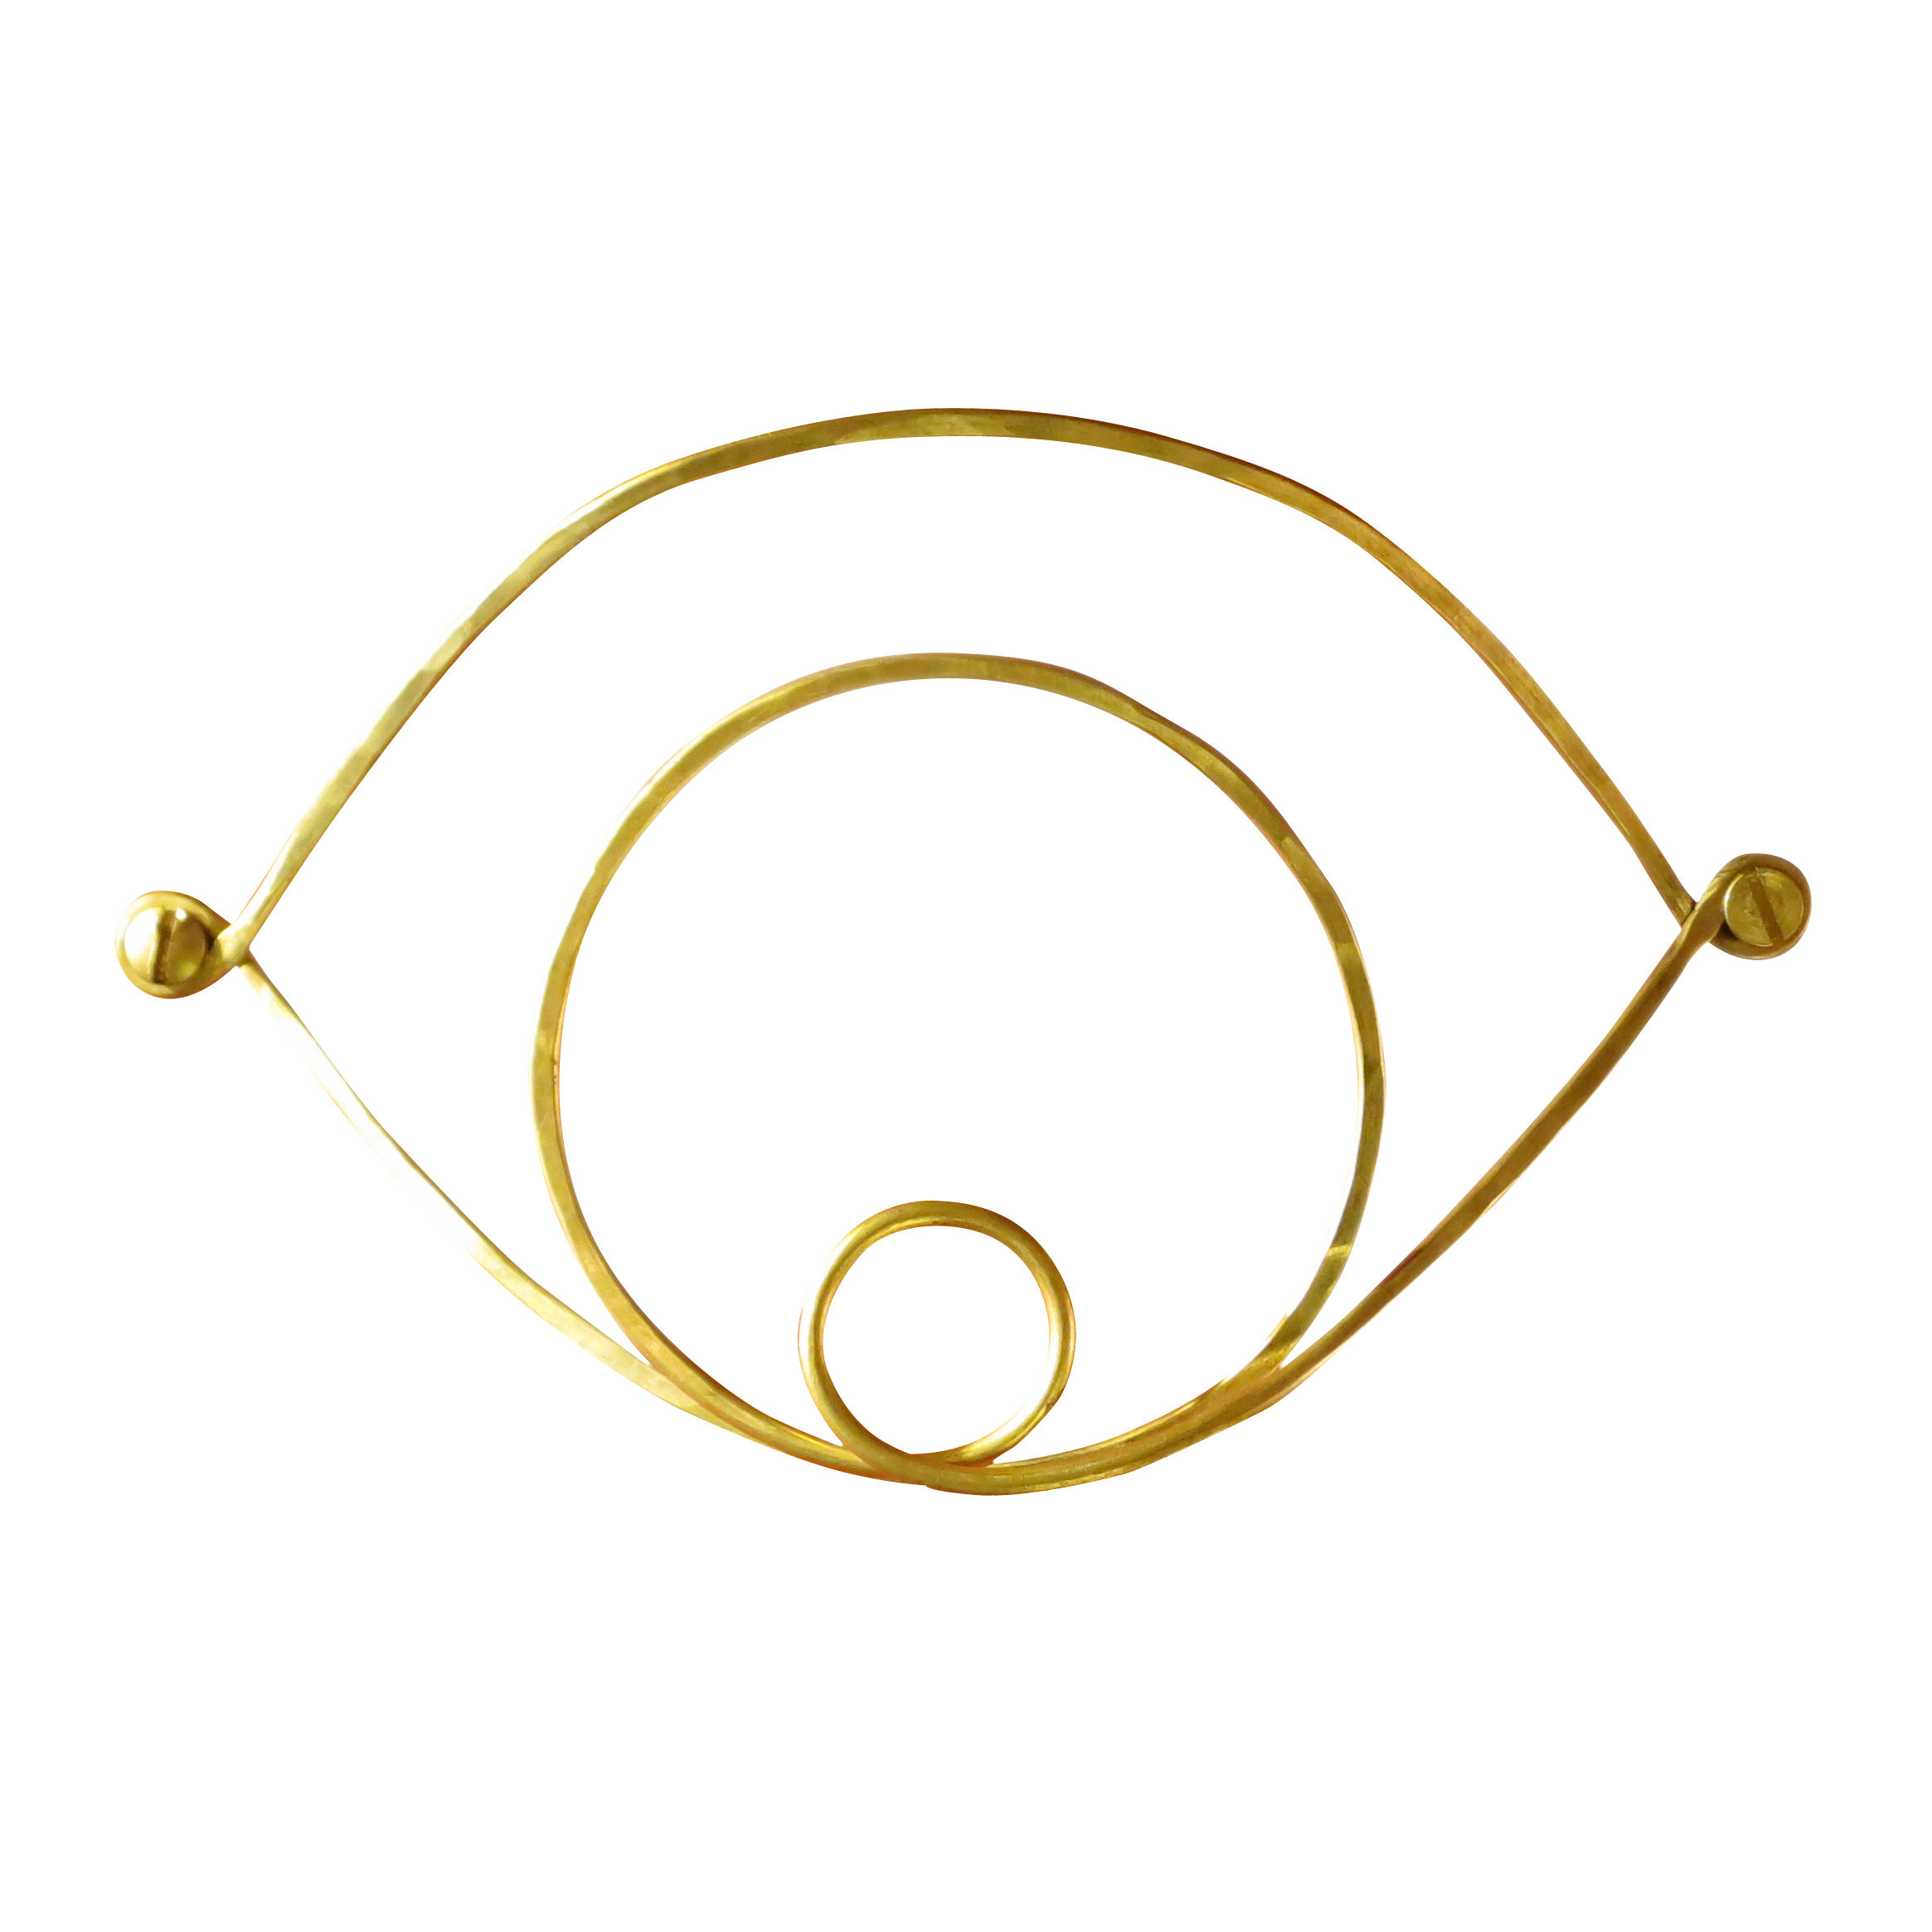 Decoration - Home Accessories - Silhouettes - Wall holder - Eye / Brass by Sentou Edition - Eye / Brass - Brass